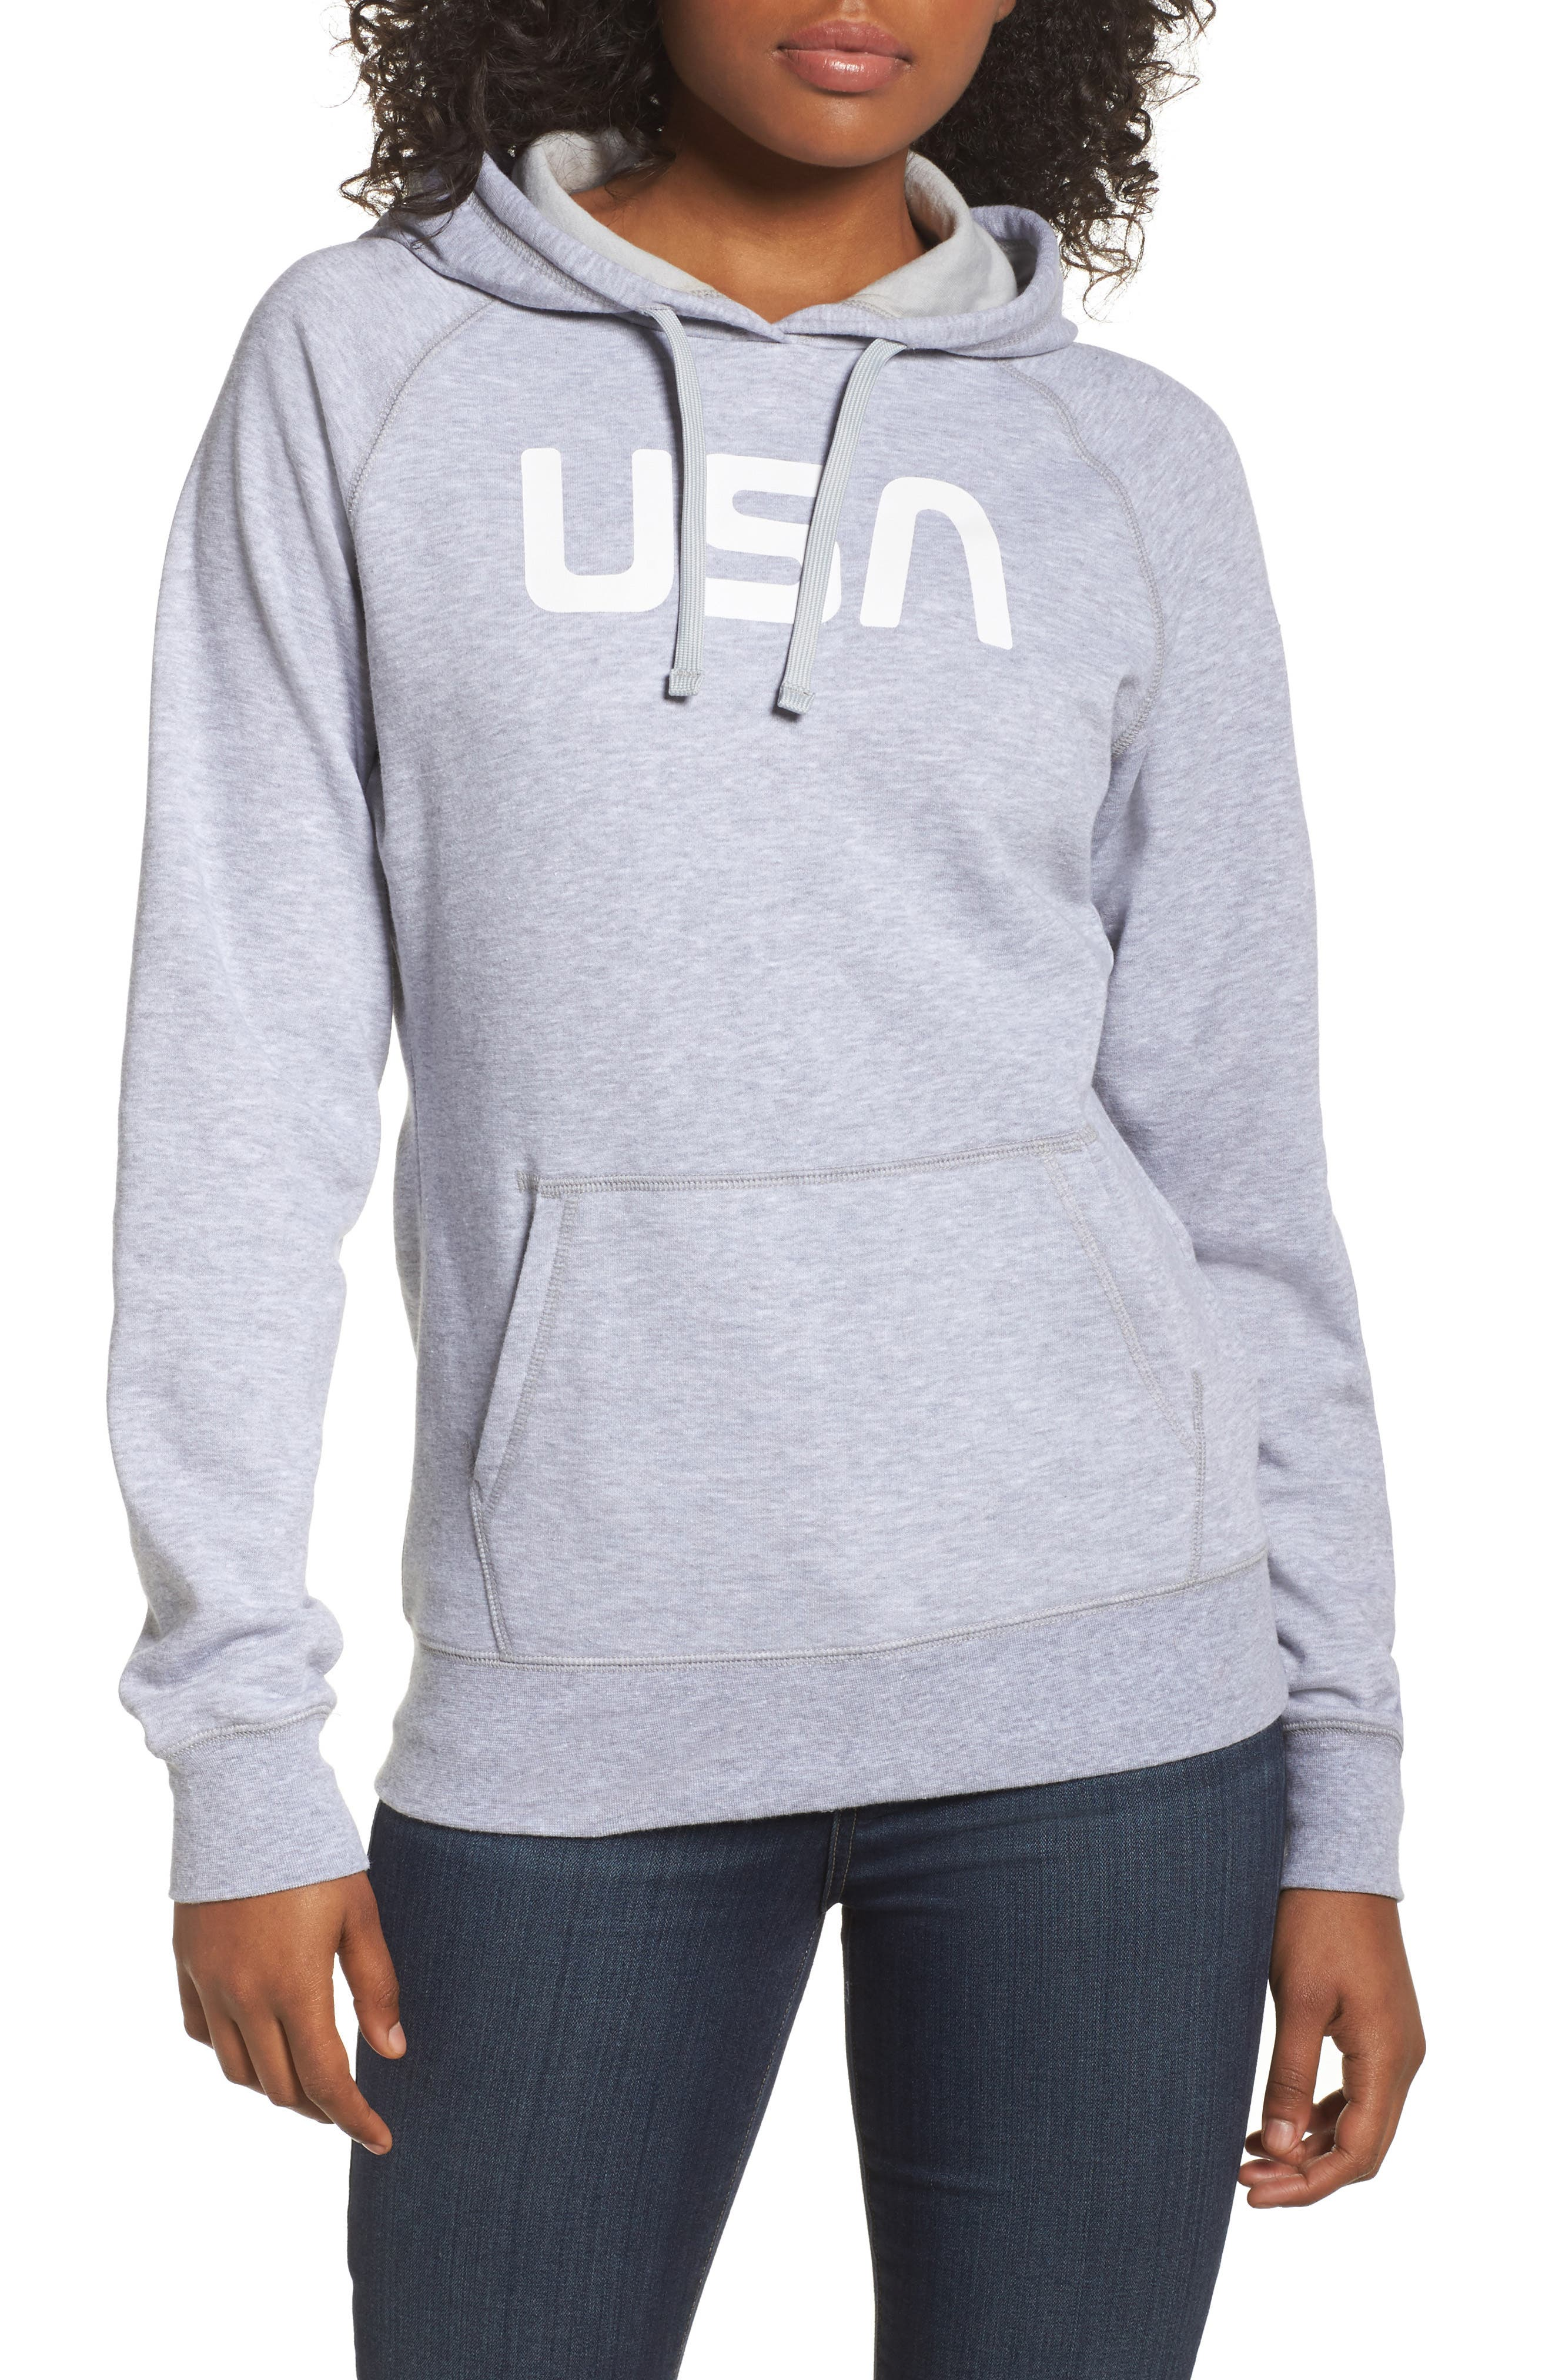 International Collection USA Pullover Hoodie,                             Main thumbnail 1, color,                             Tnf Light Grey Heather